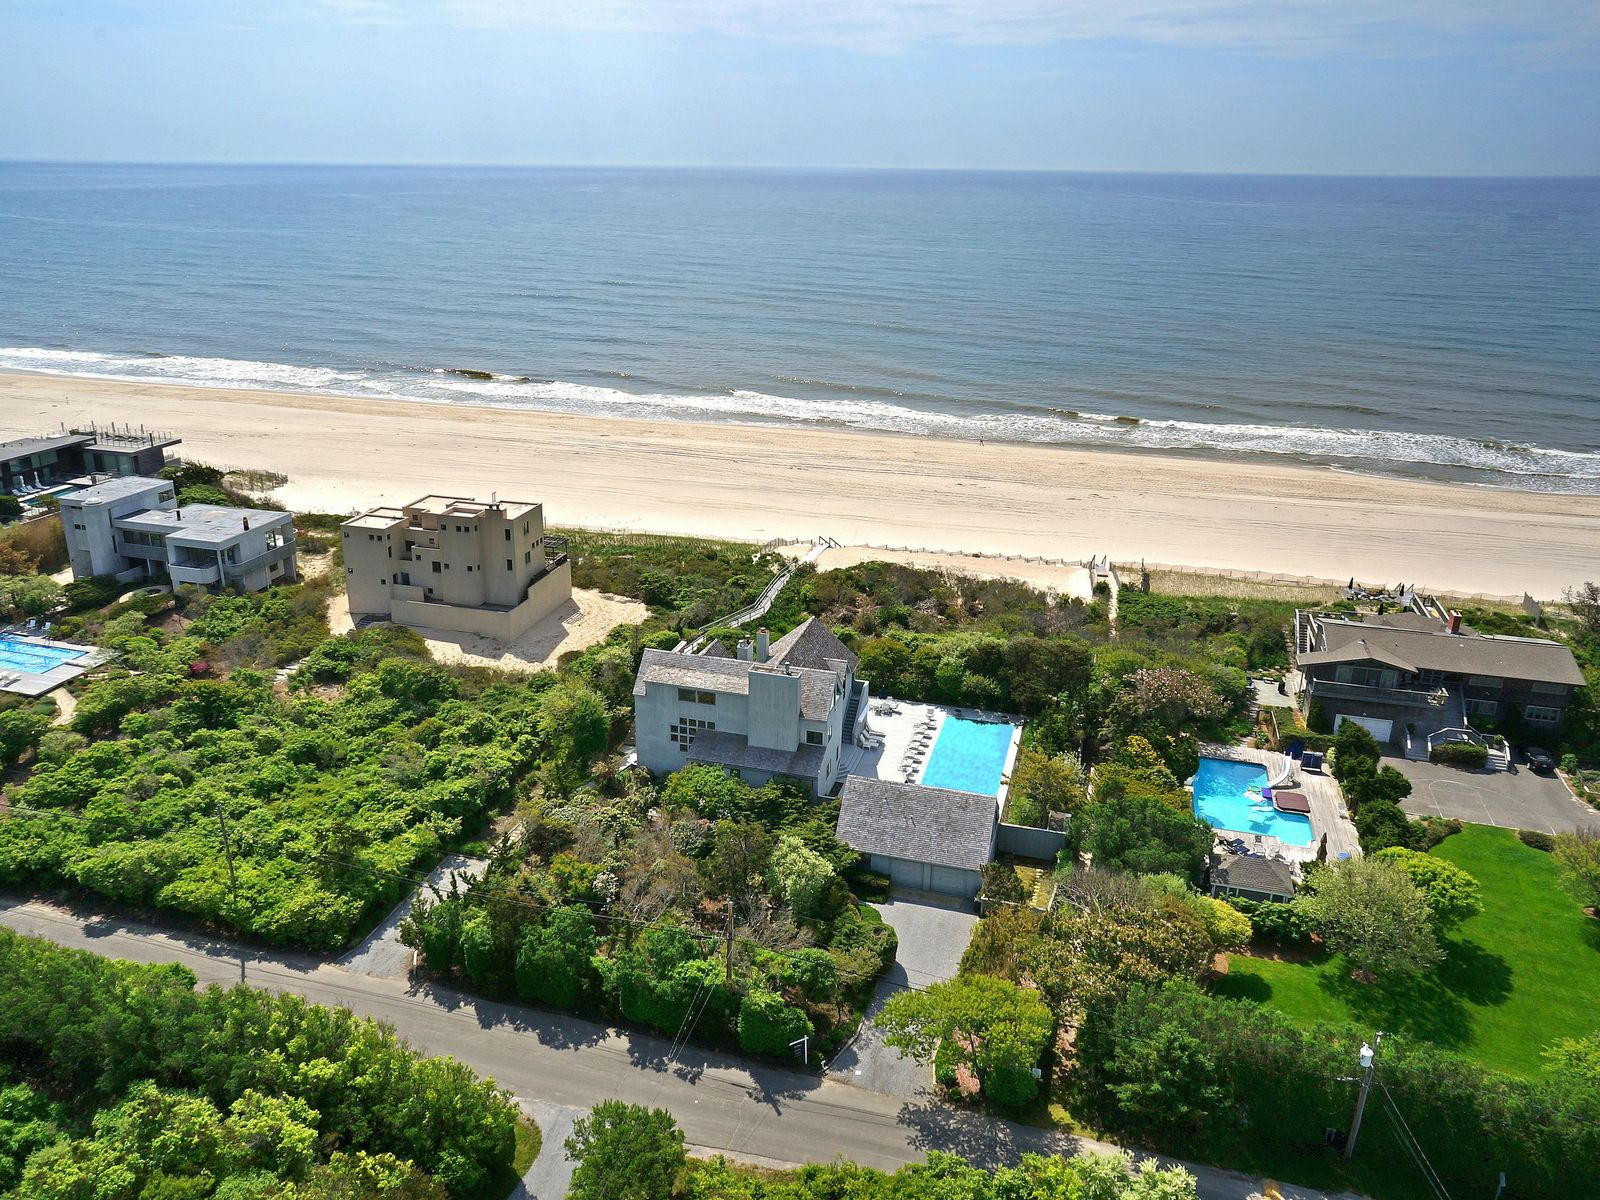 Bridgehampton Oceanfront, Bridgehampton NY Single Family Home - Hamptons Real Estate